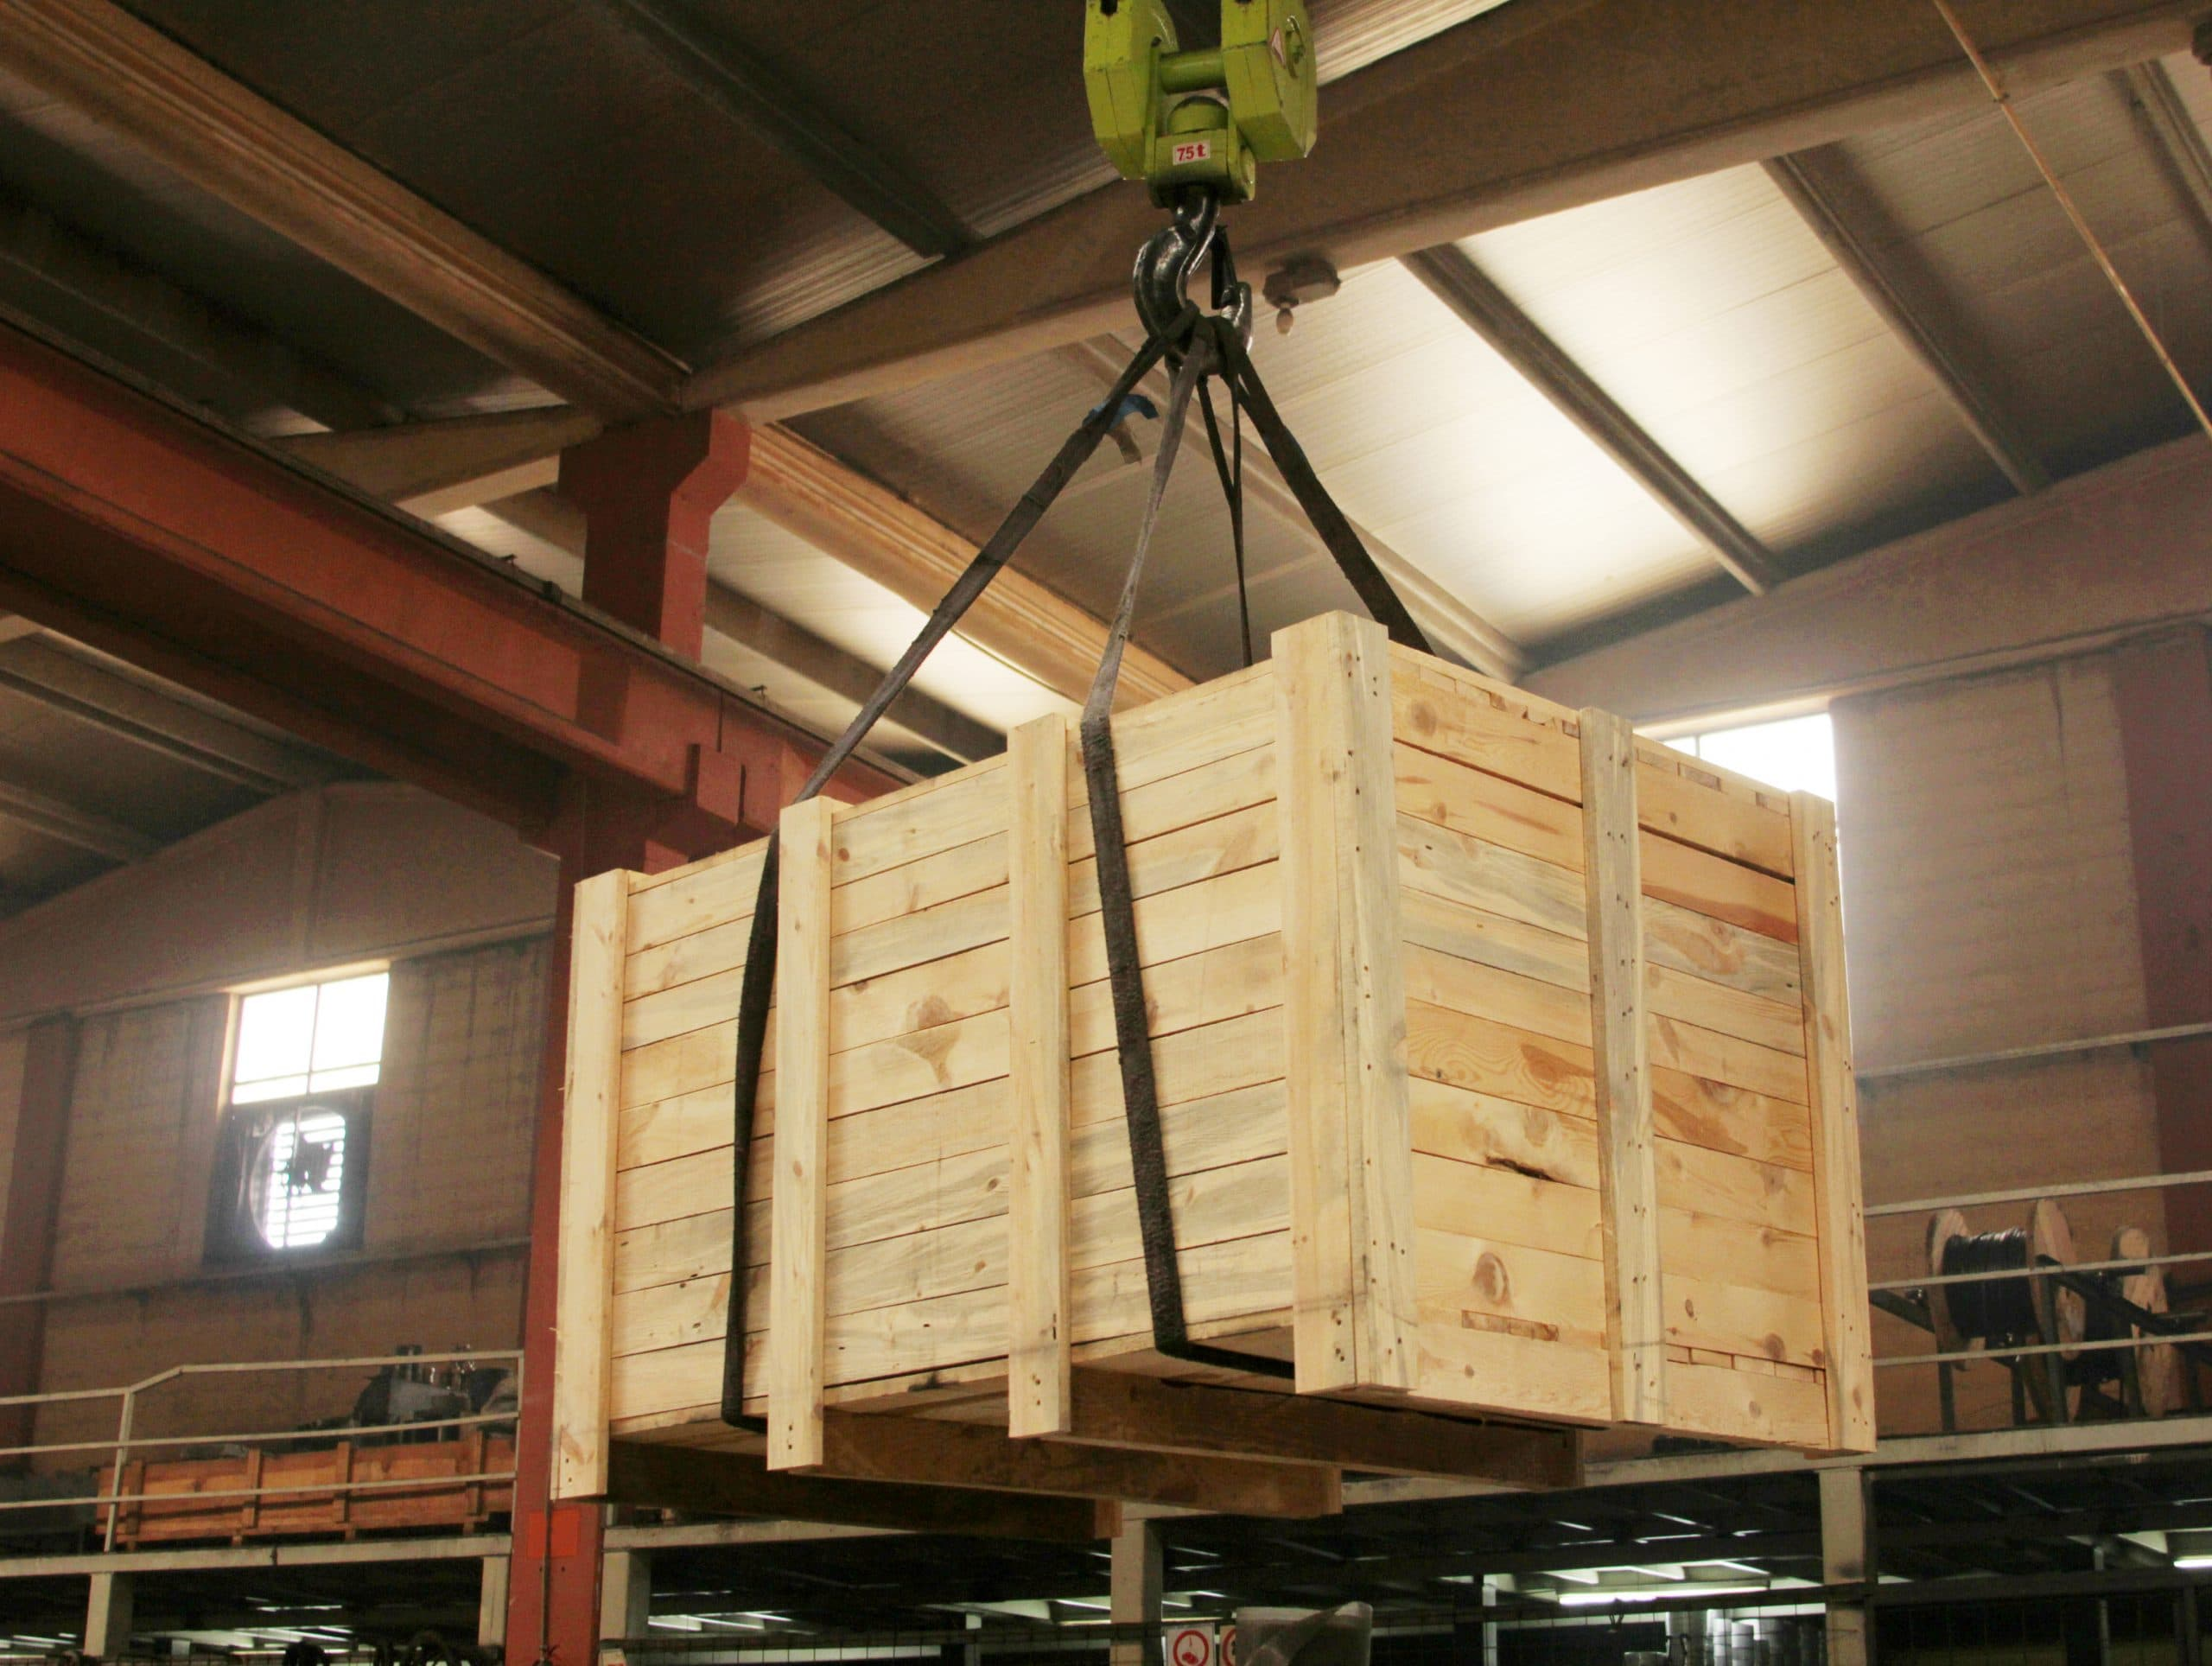 Wood Crating vs Shipping Containers: Which Is the Best Option for Moving Freight?